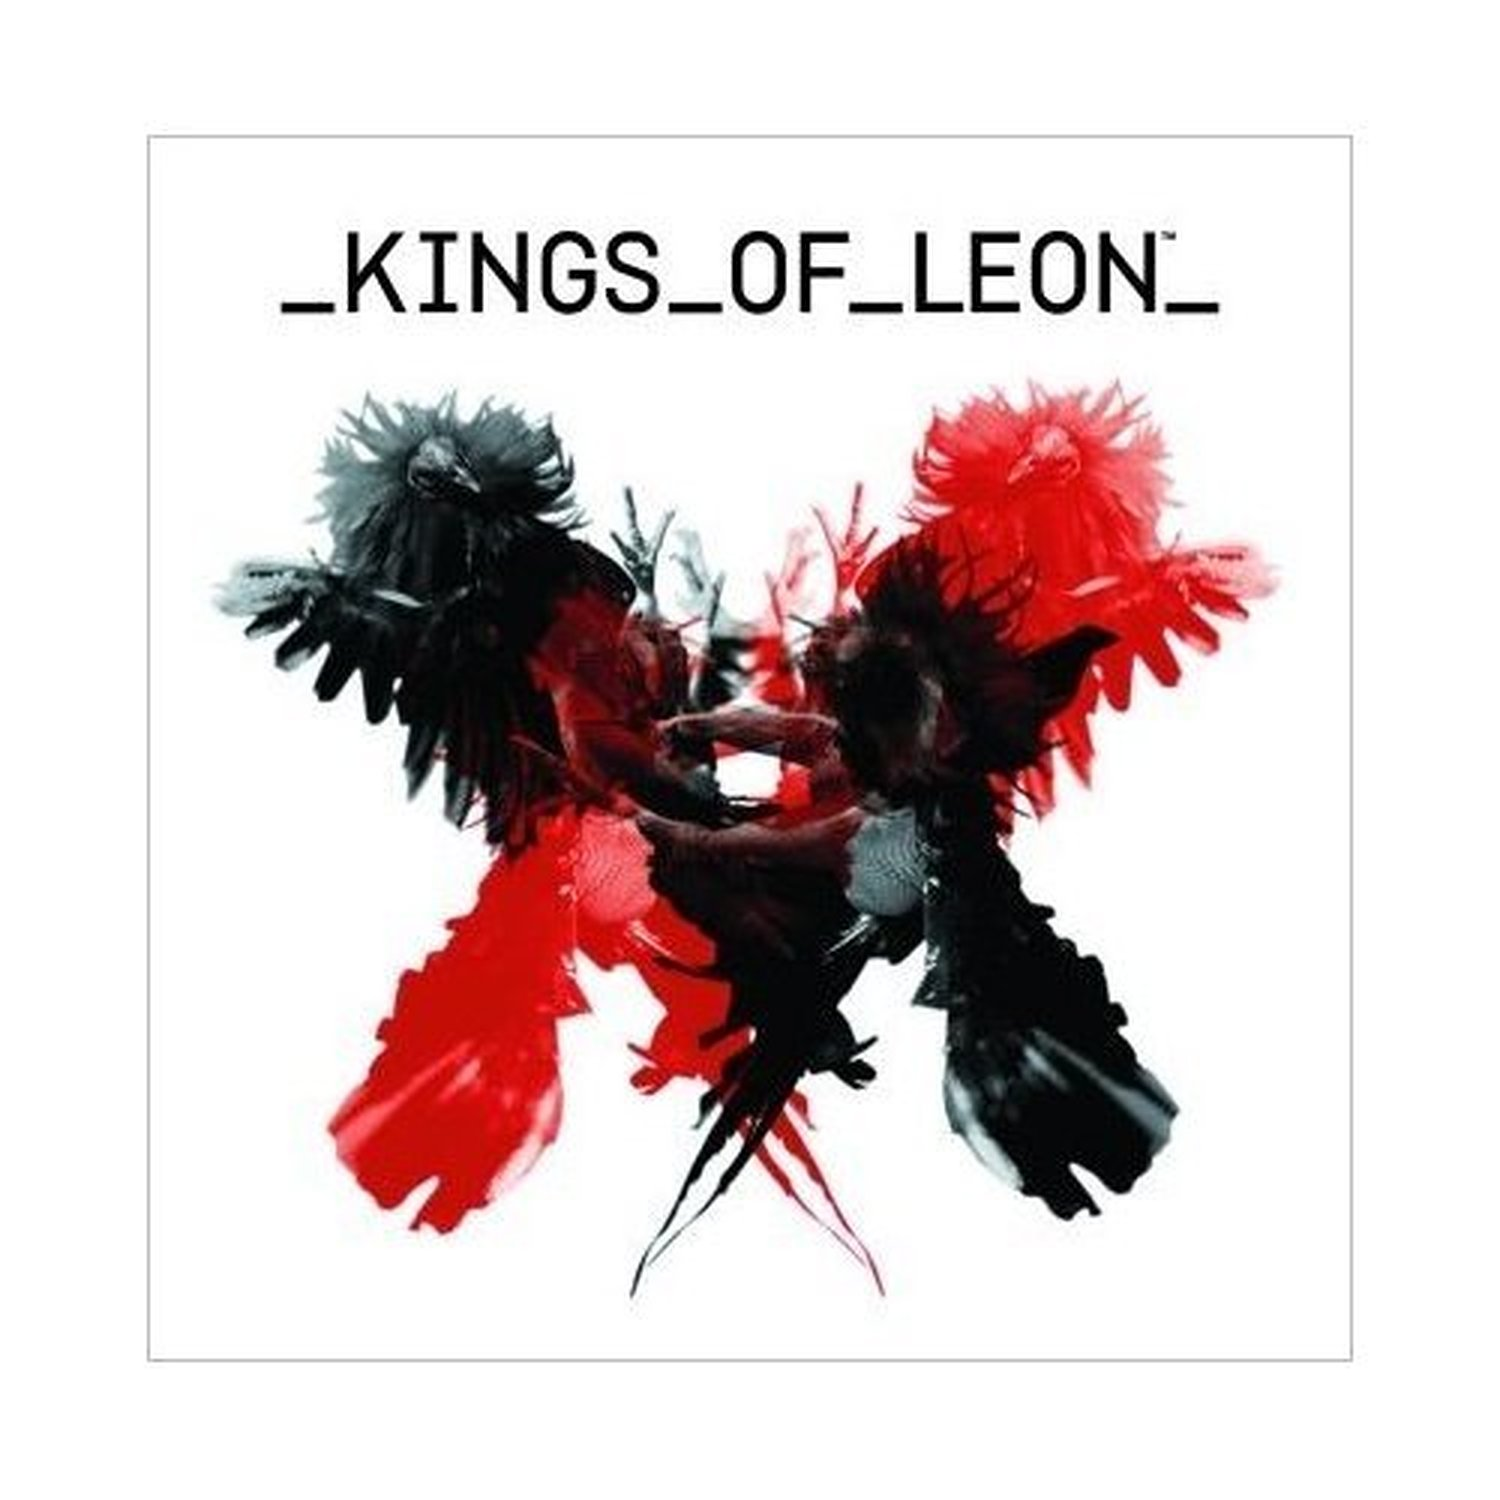 Kings of leon logos and icons greeting birthday card any occasion kings of leon logos and icons greeting birthday card any occasion album official m4hsunfo